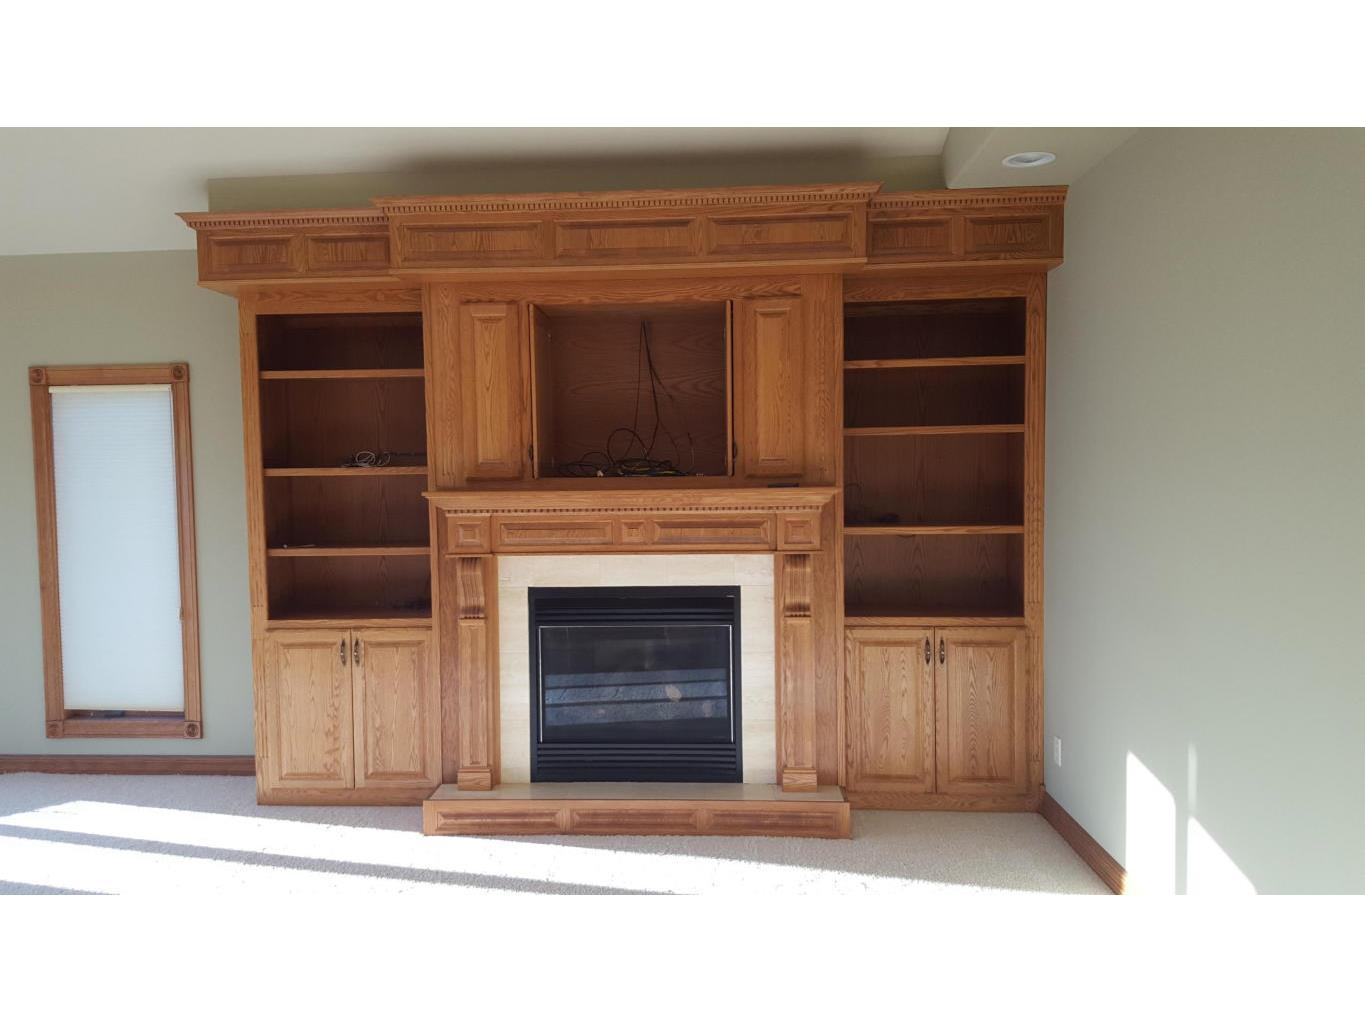 Gas Fireplace with built-ins